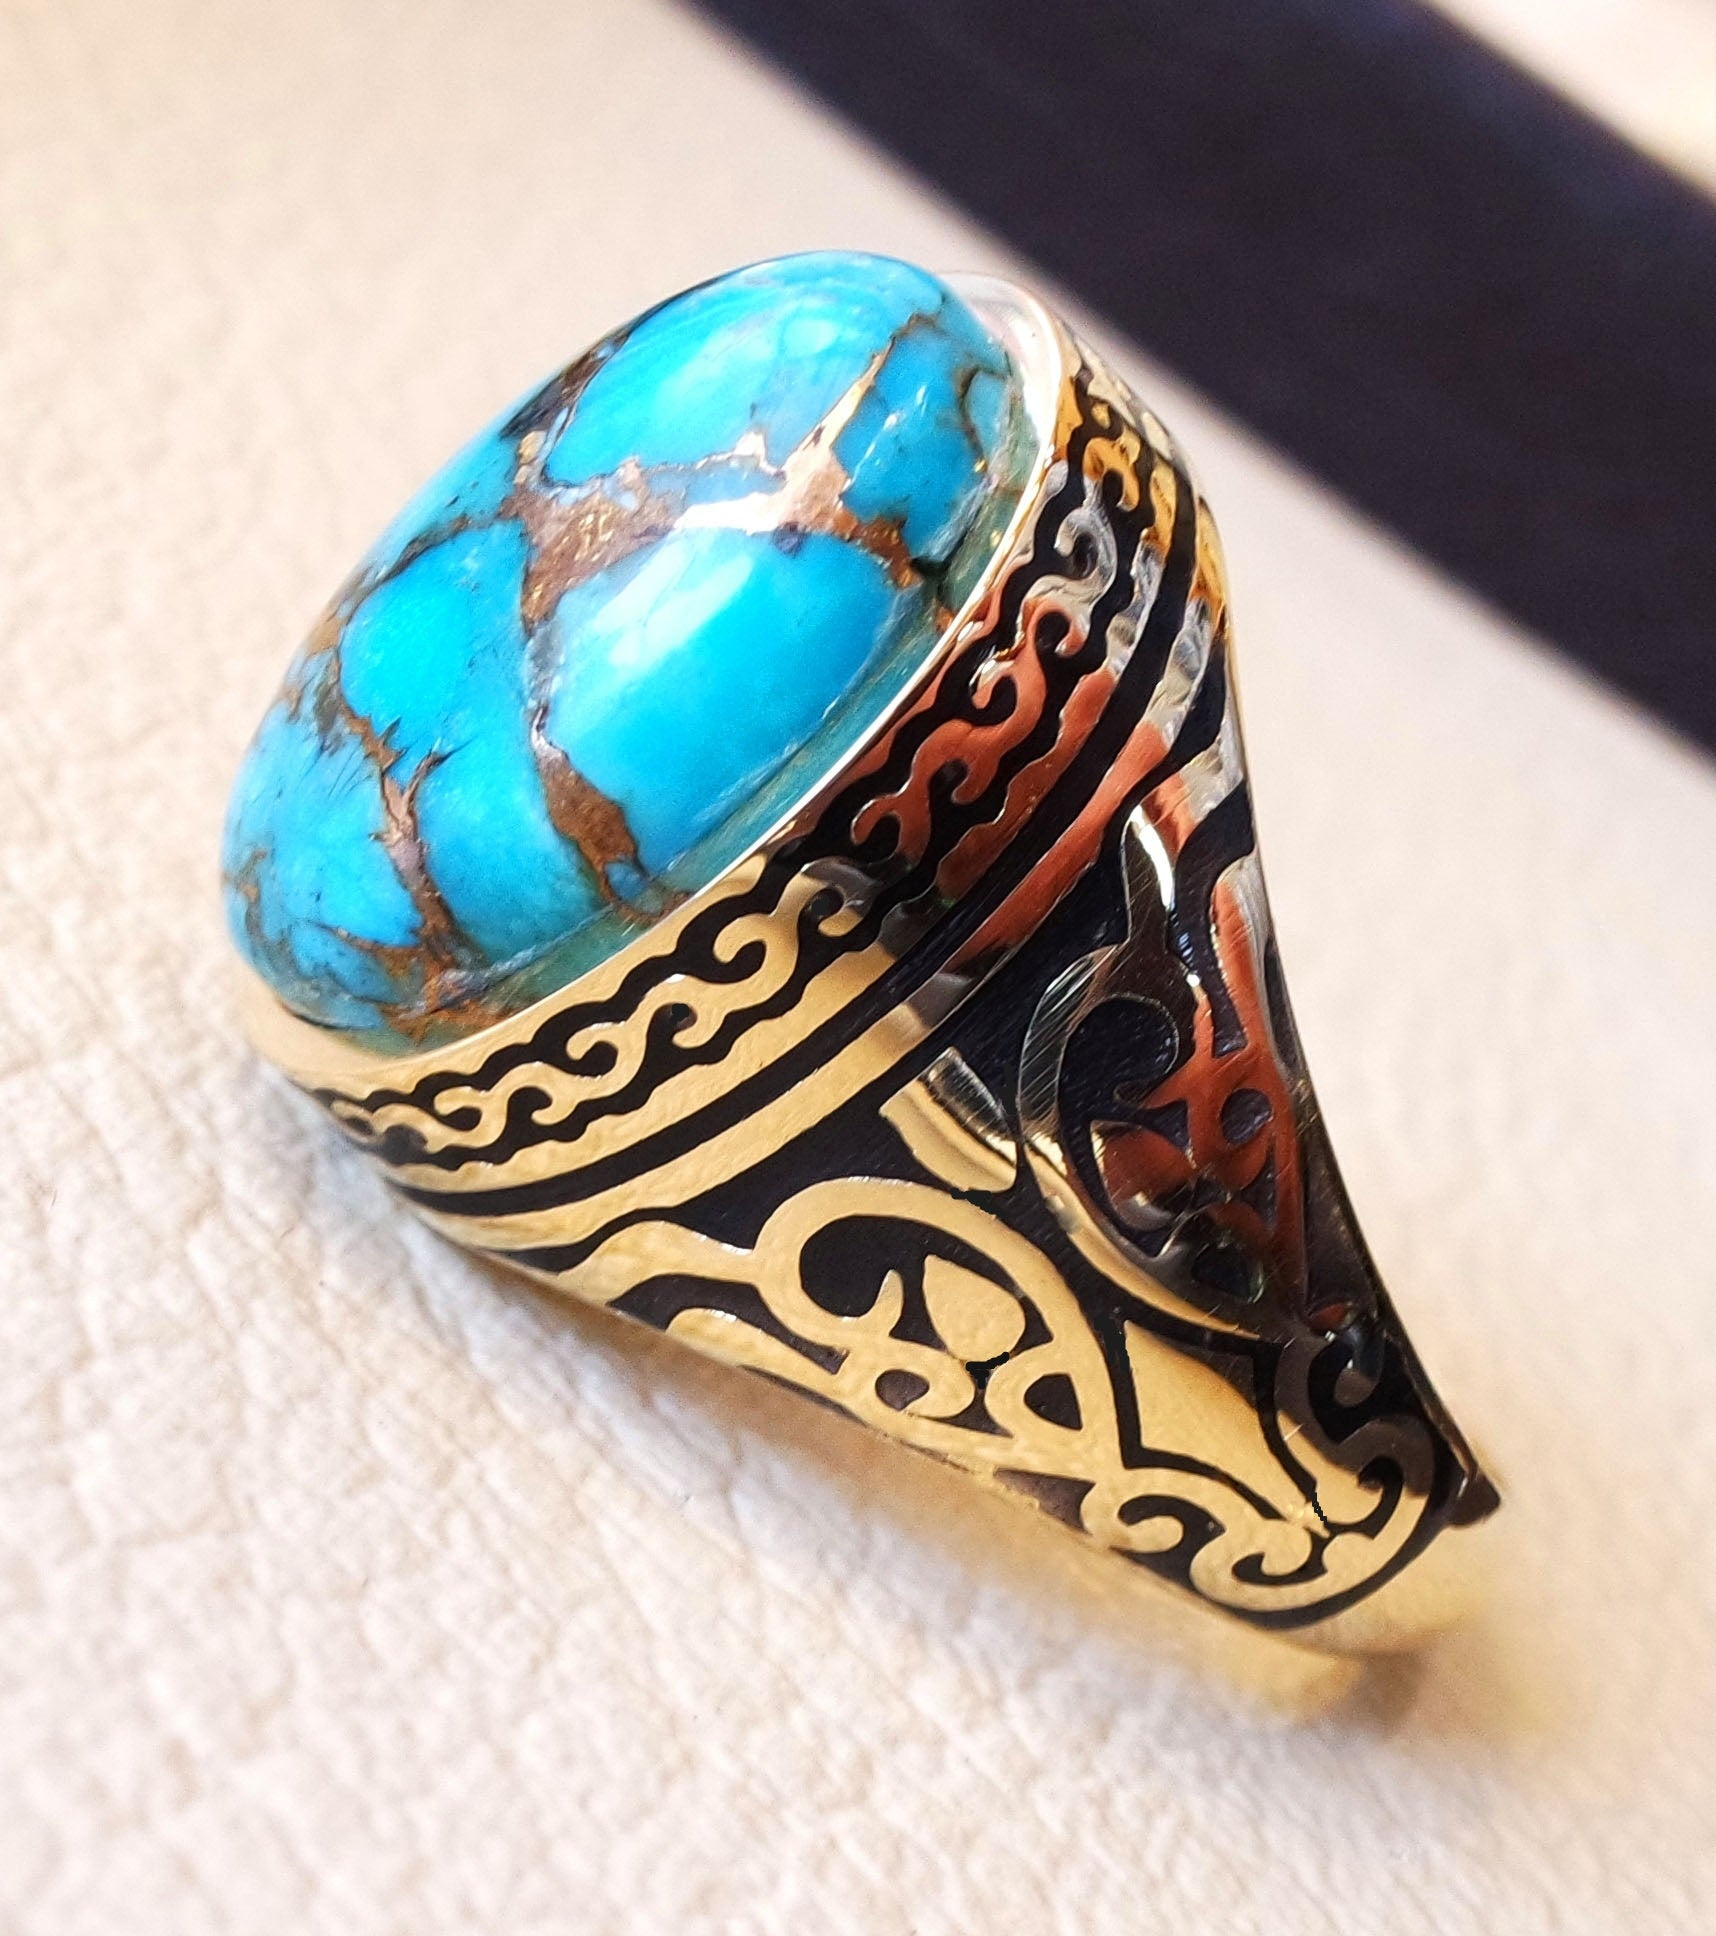 18k yellow gold men ring blue turquoise cabochon high quality natural stone all sizes Ottoman signet style fine jewelry fast shipping